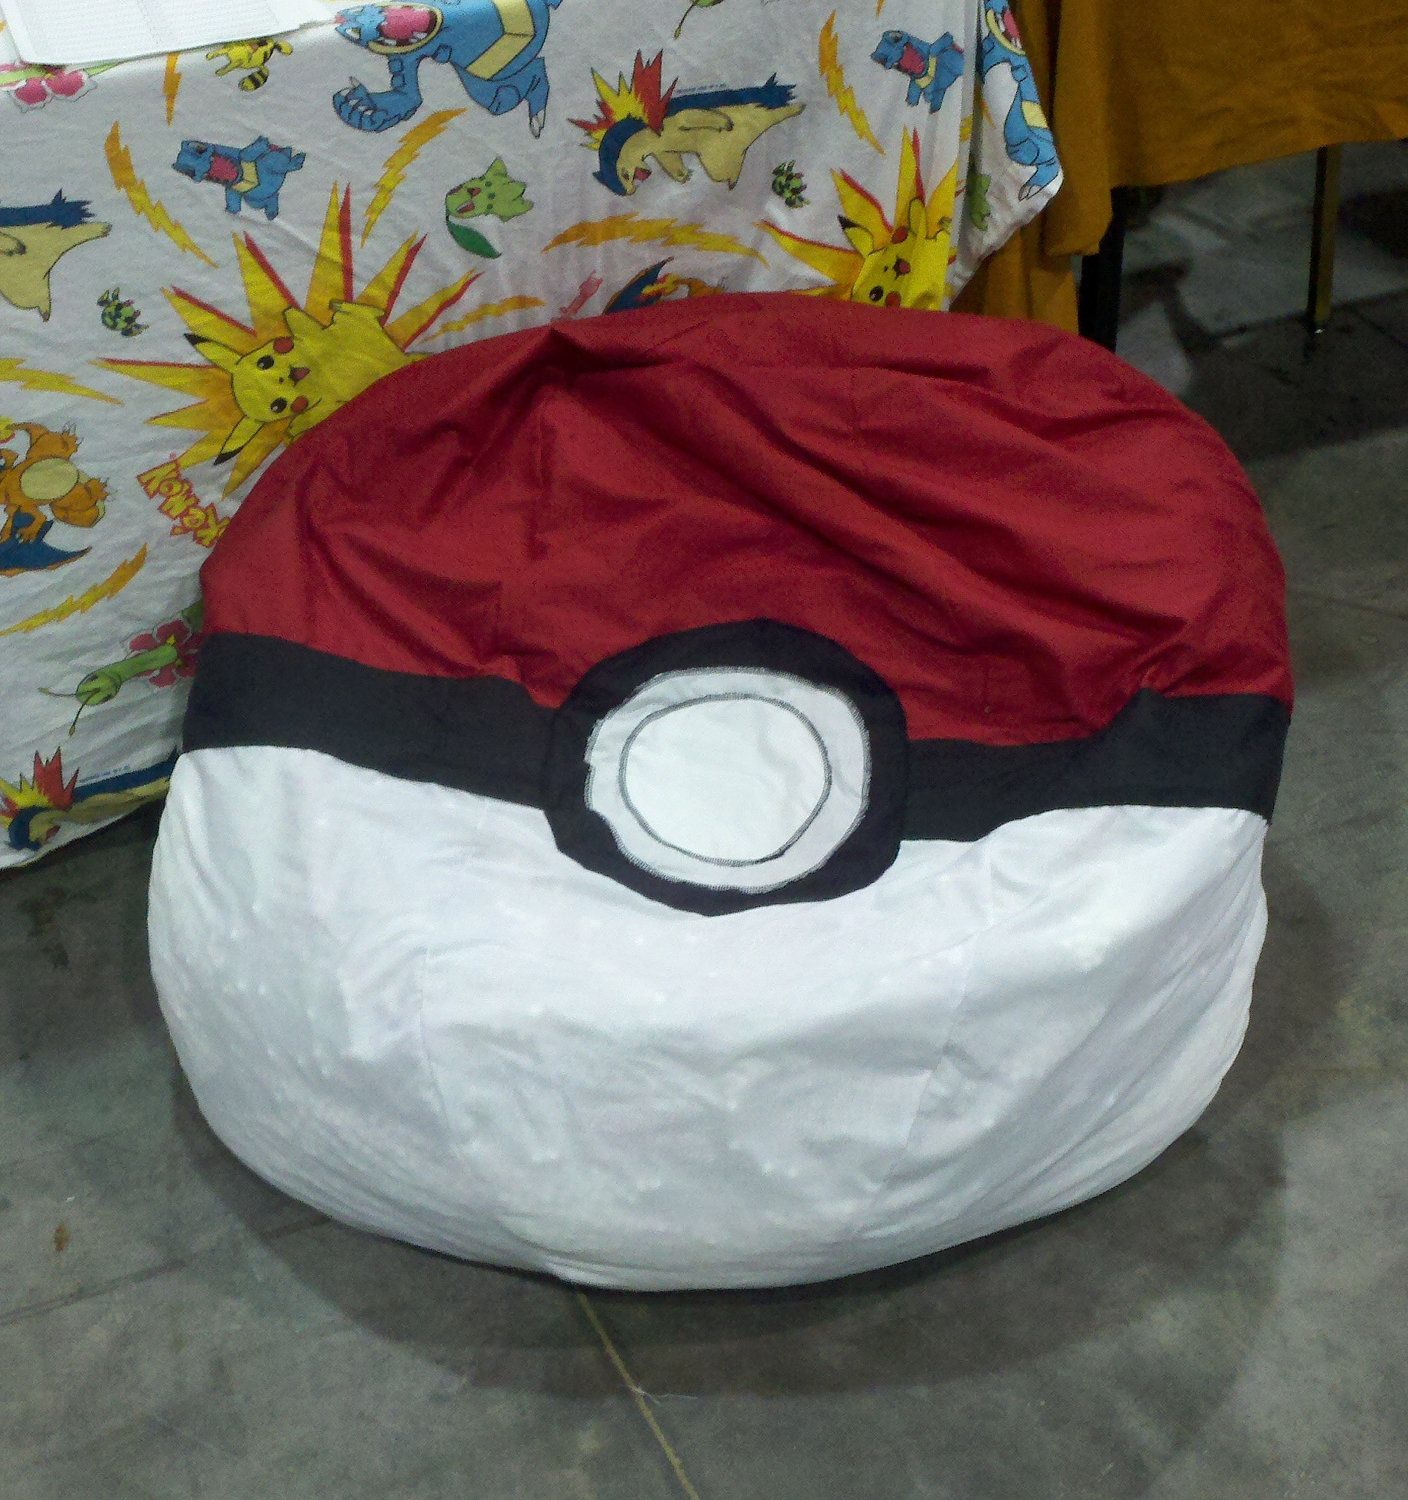 bean bag chair covers Pokeball Bean Bag Chair Cover. $100.00, via Etsy. | I nerd this  bean bag chair covers